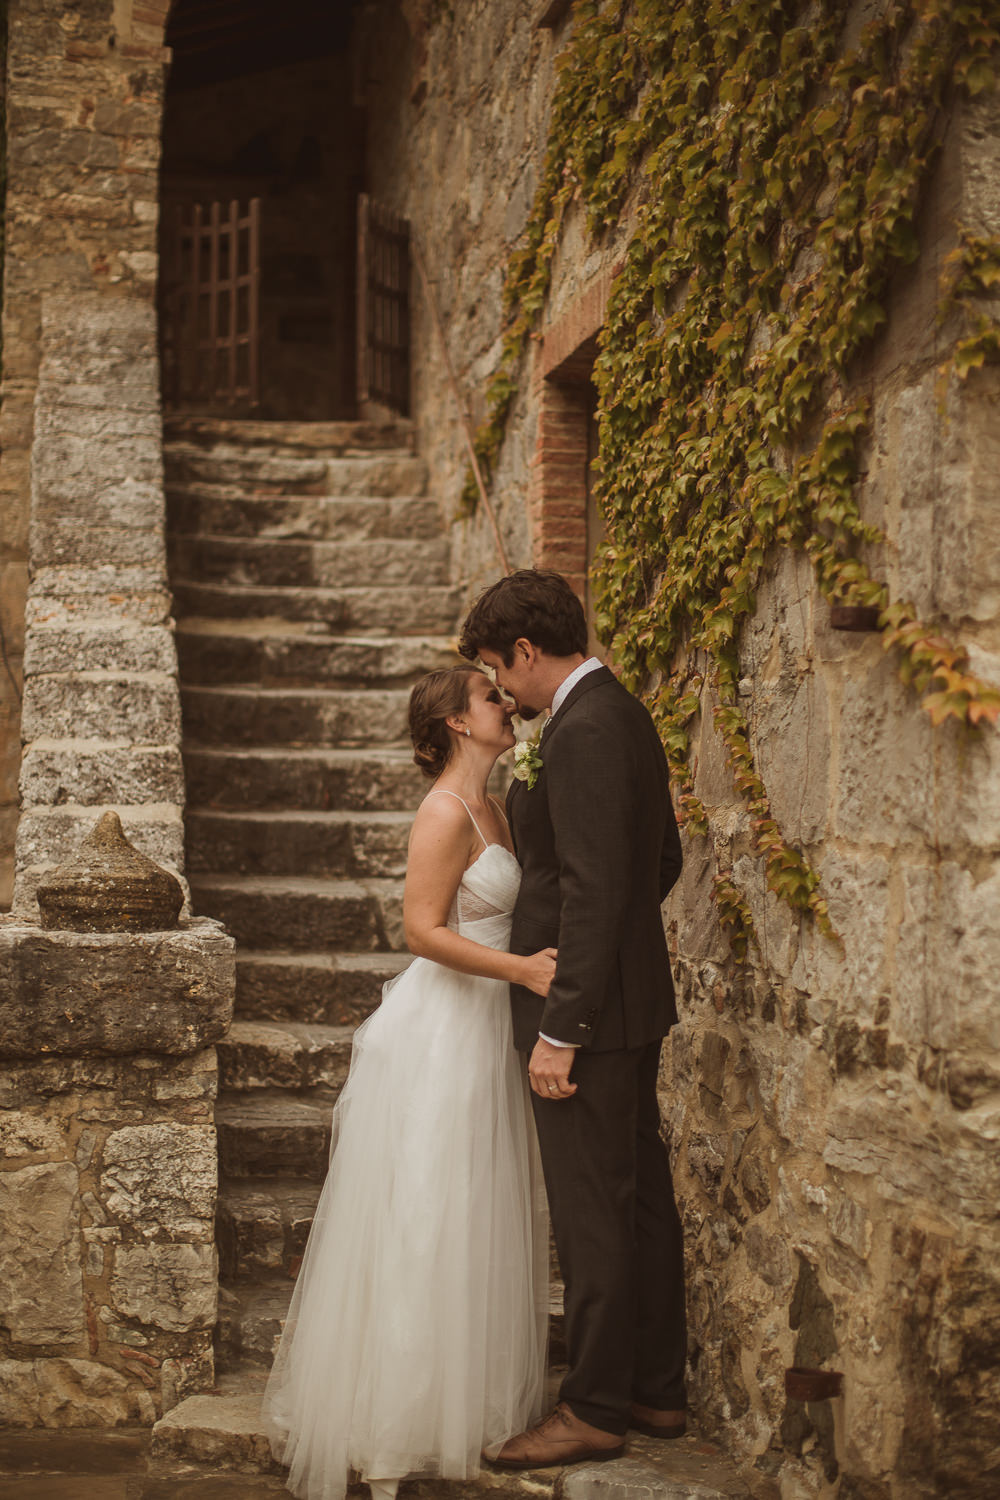 Utterly Romantic Italy Villa Wedding with Twinkling Festoon Lights